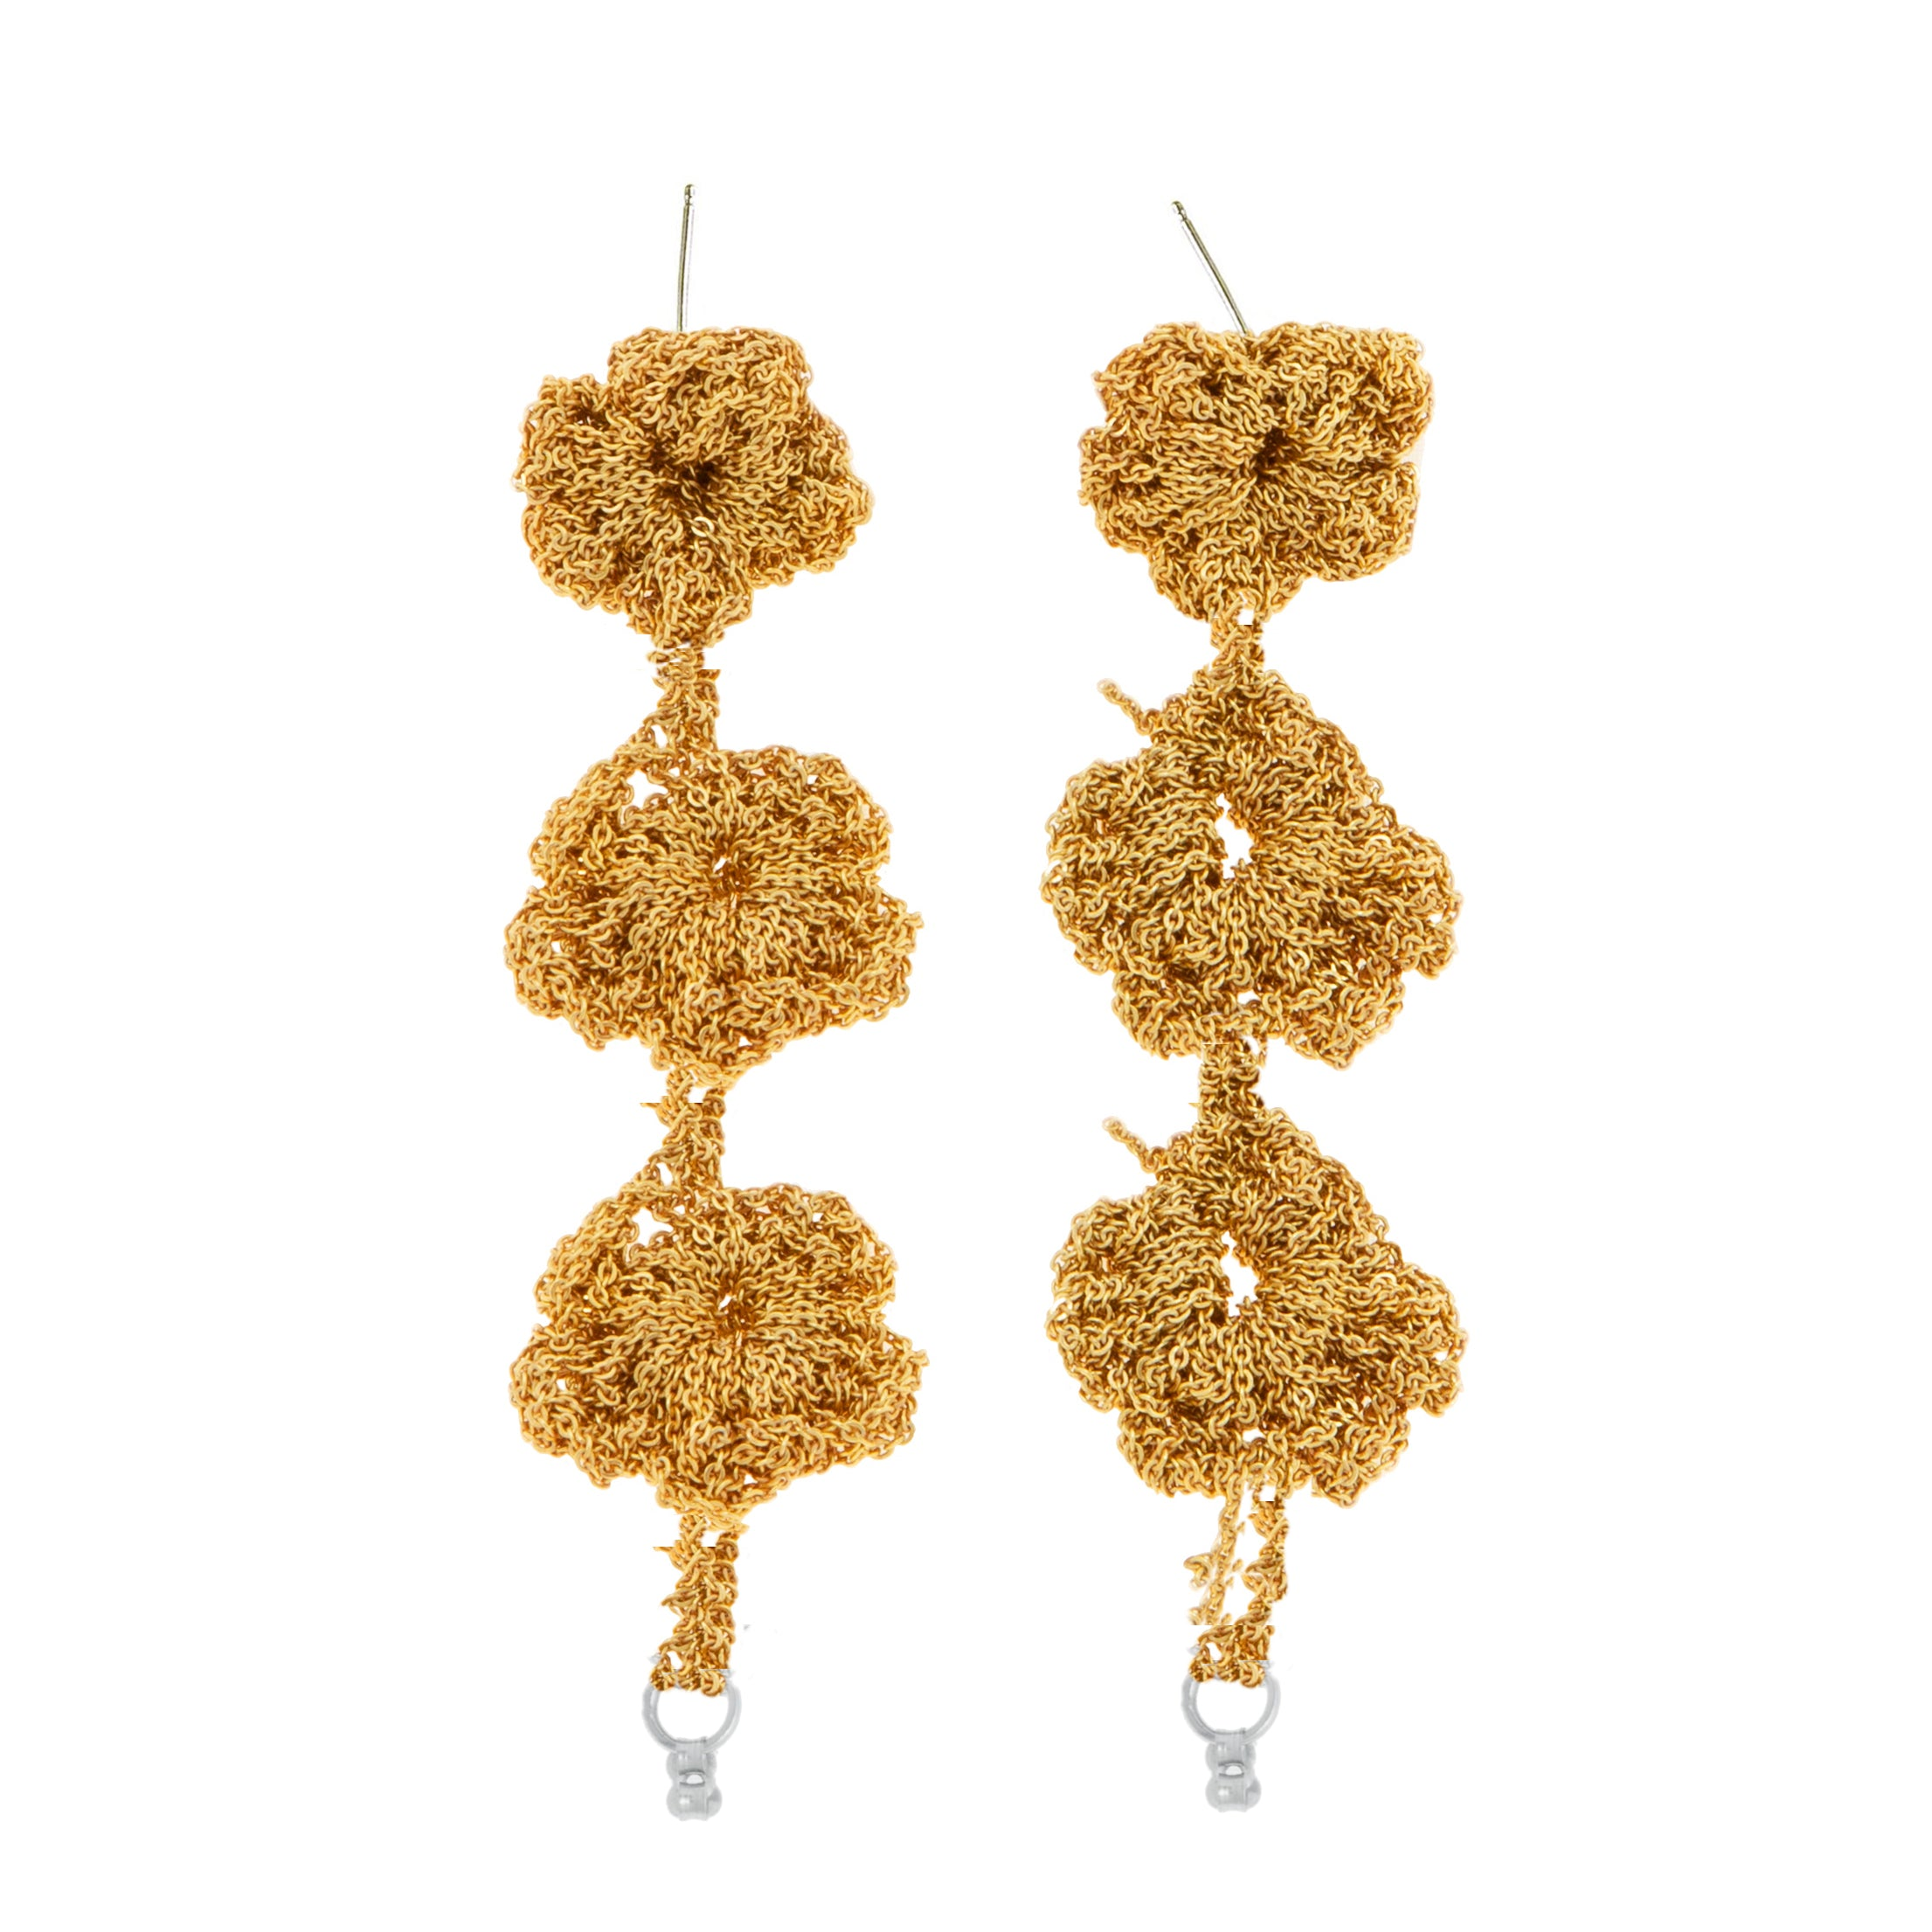 Pansy Chain Cuff Earrings in Gold